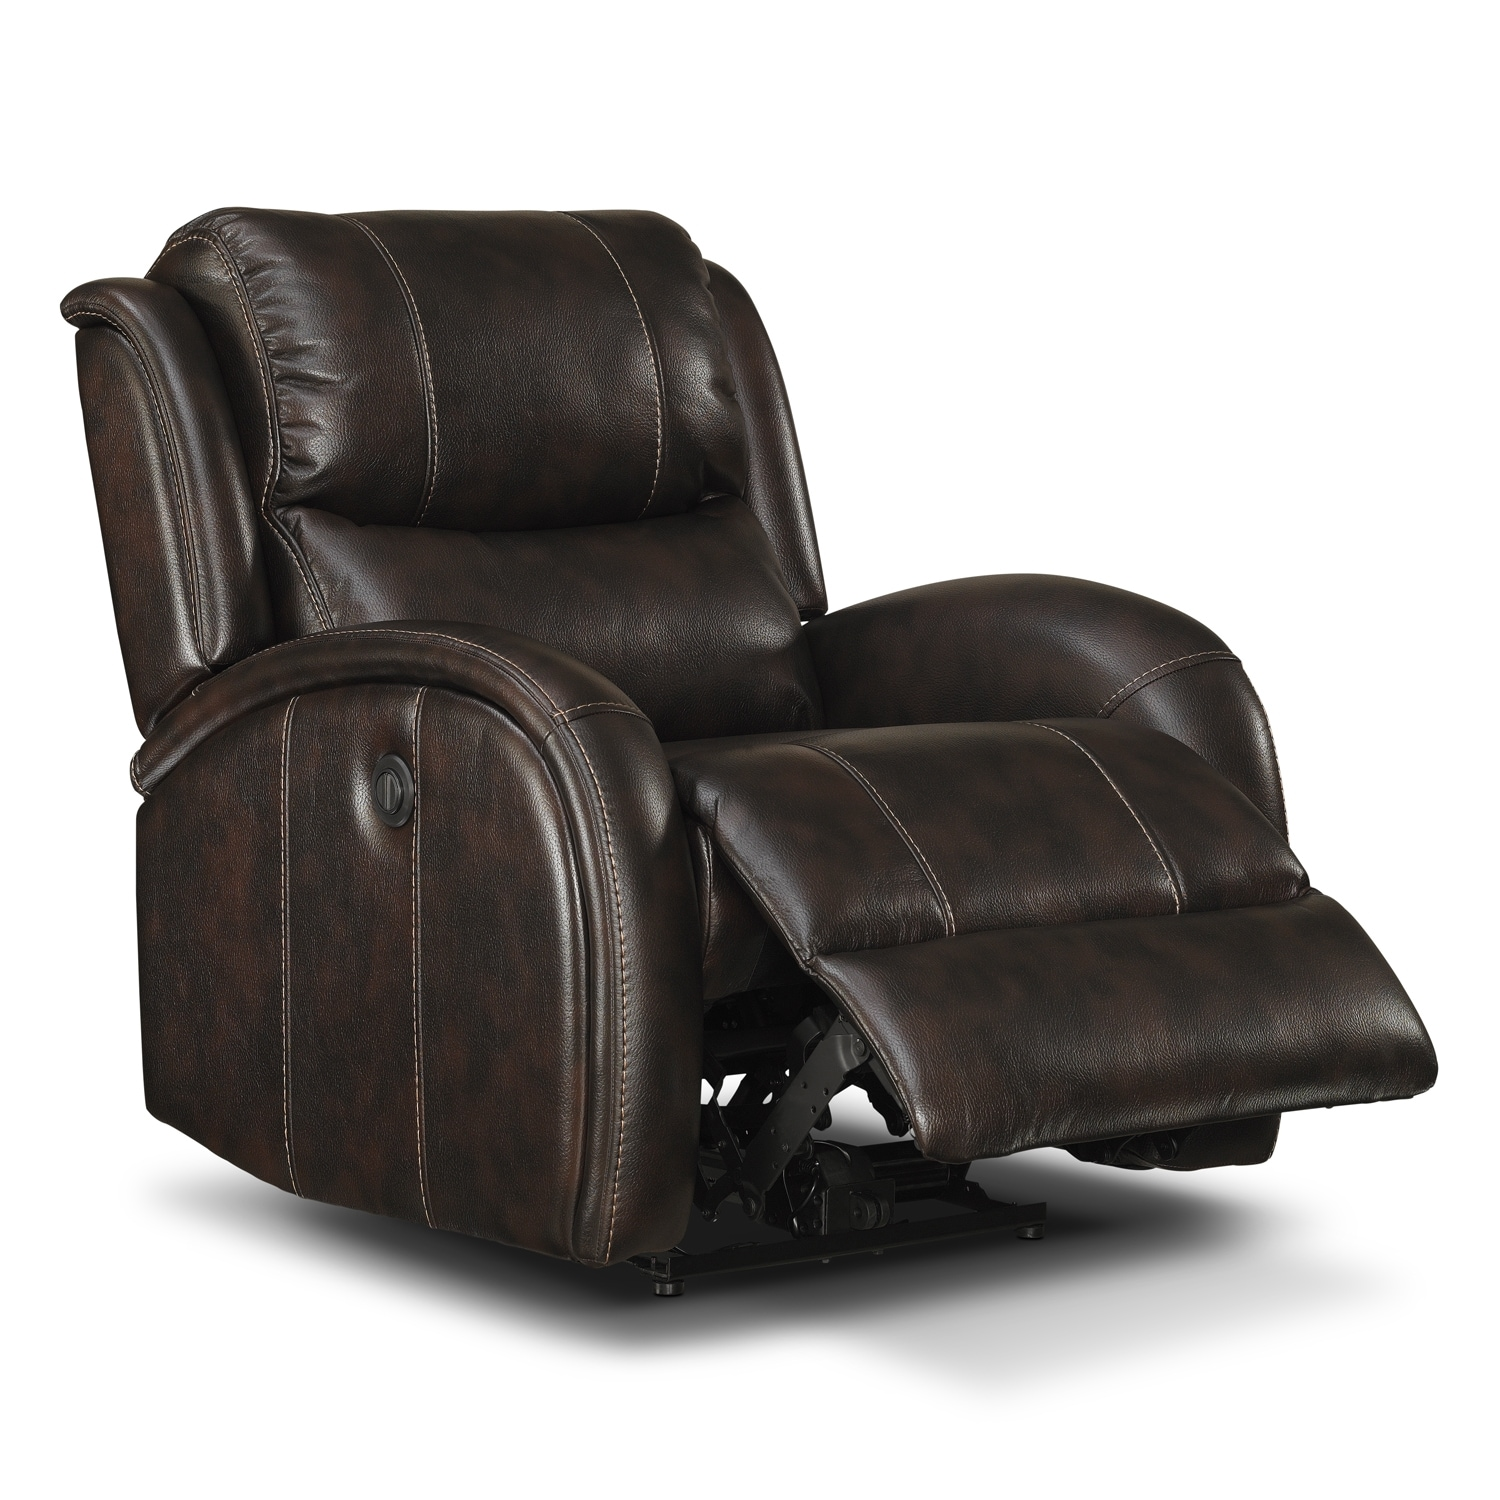 nextag furniture elegant of value compare recliners prices recliner city at